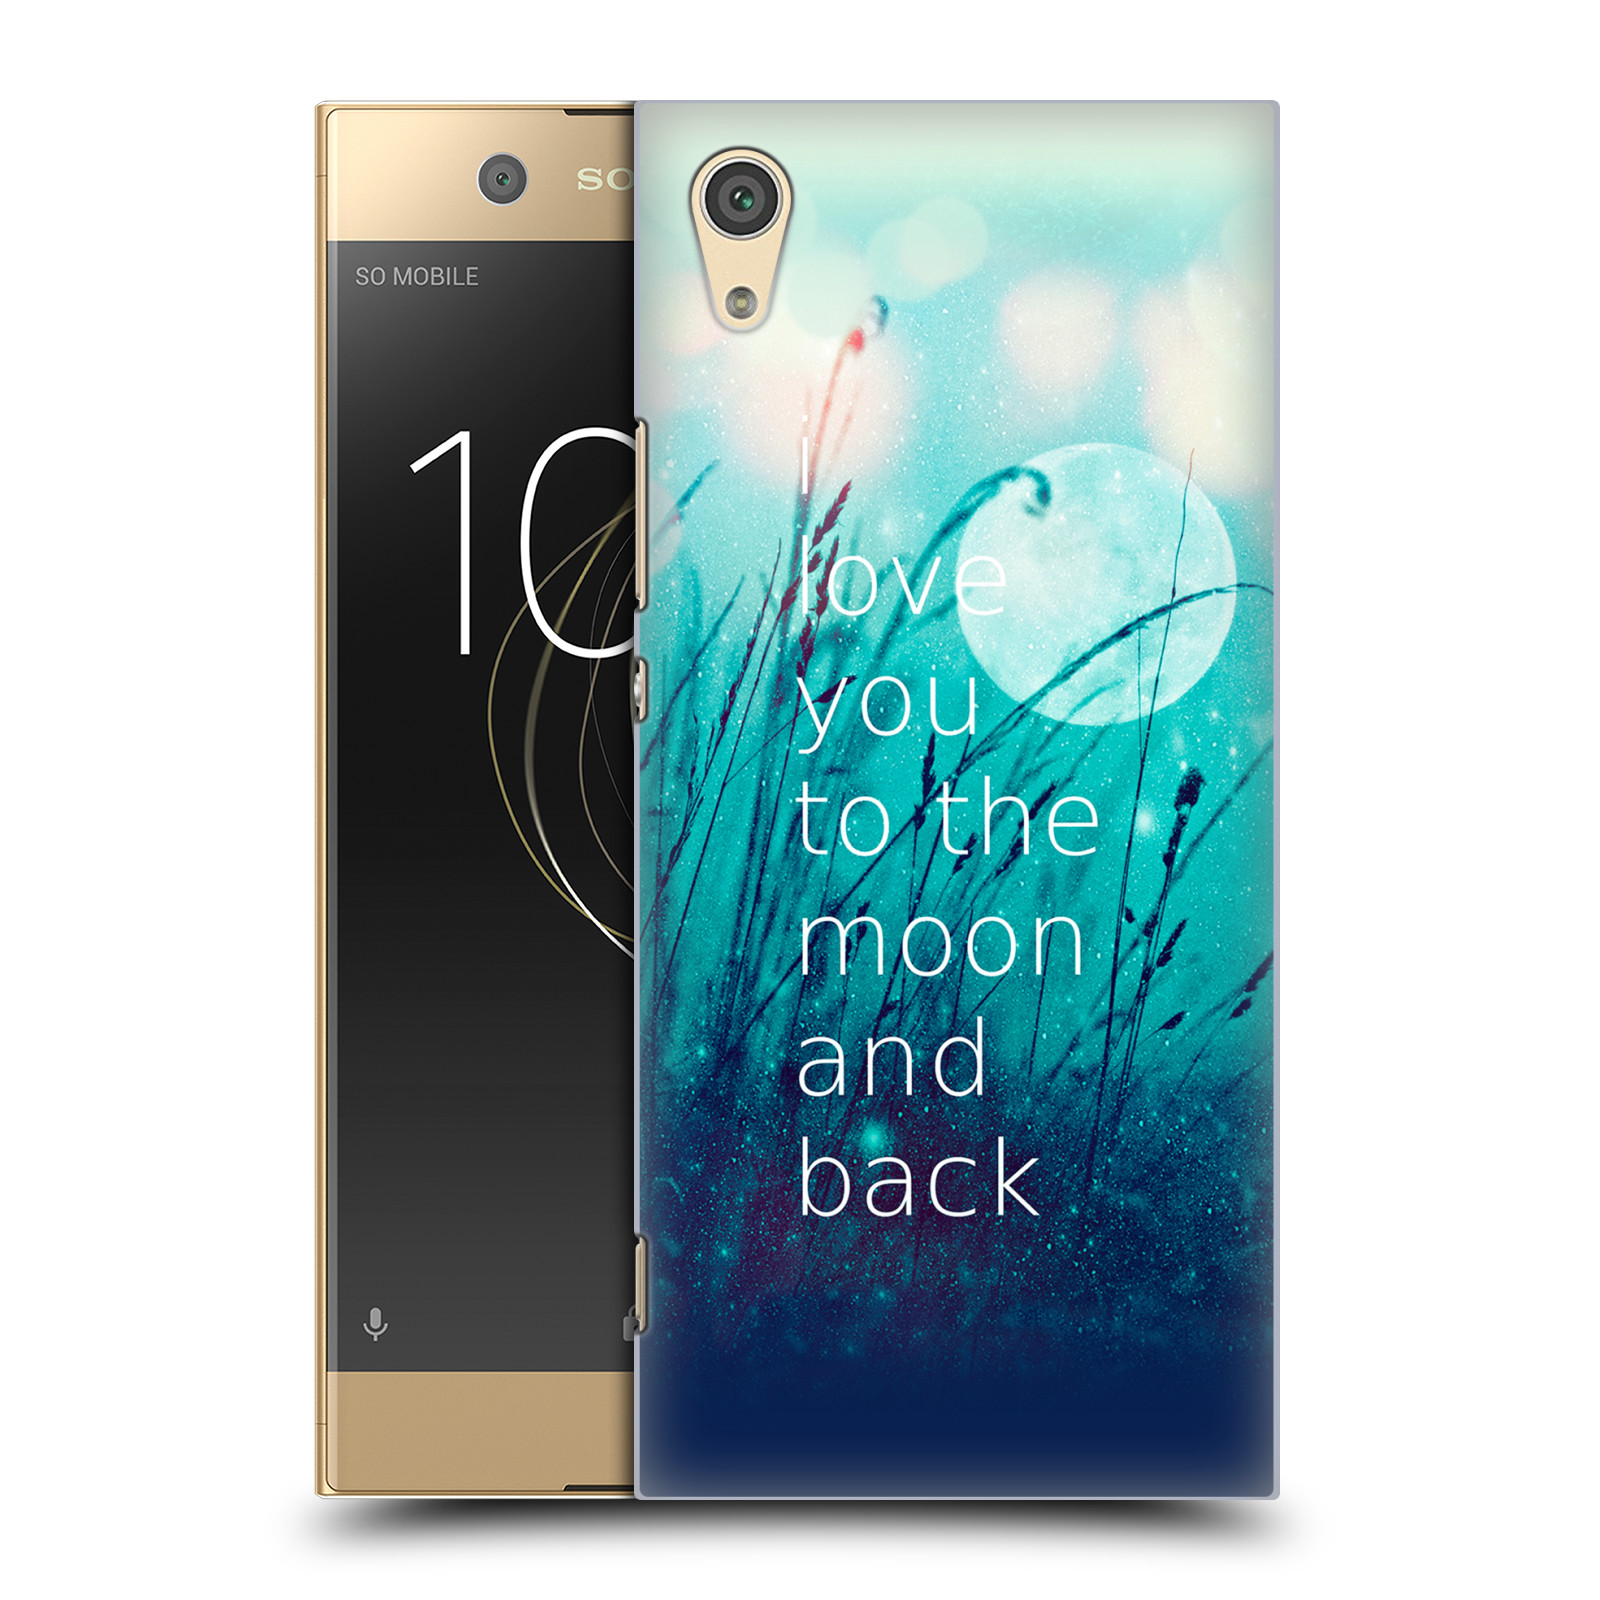 OFFICIAL-MONIKA-STRIGEL-LOVE-QUOTE-HARD-BACK-CASE-FOR-SONY-PHONES-1